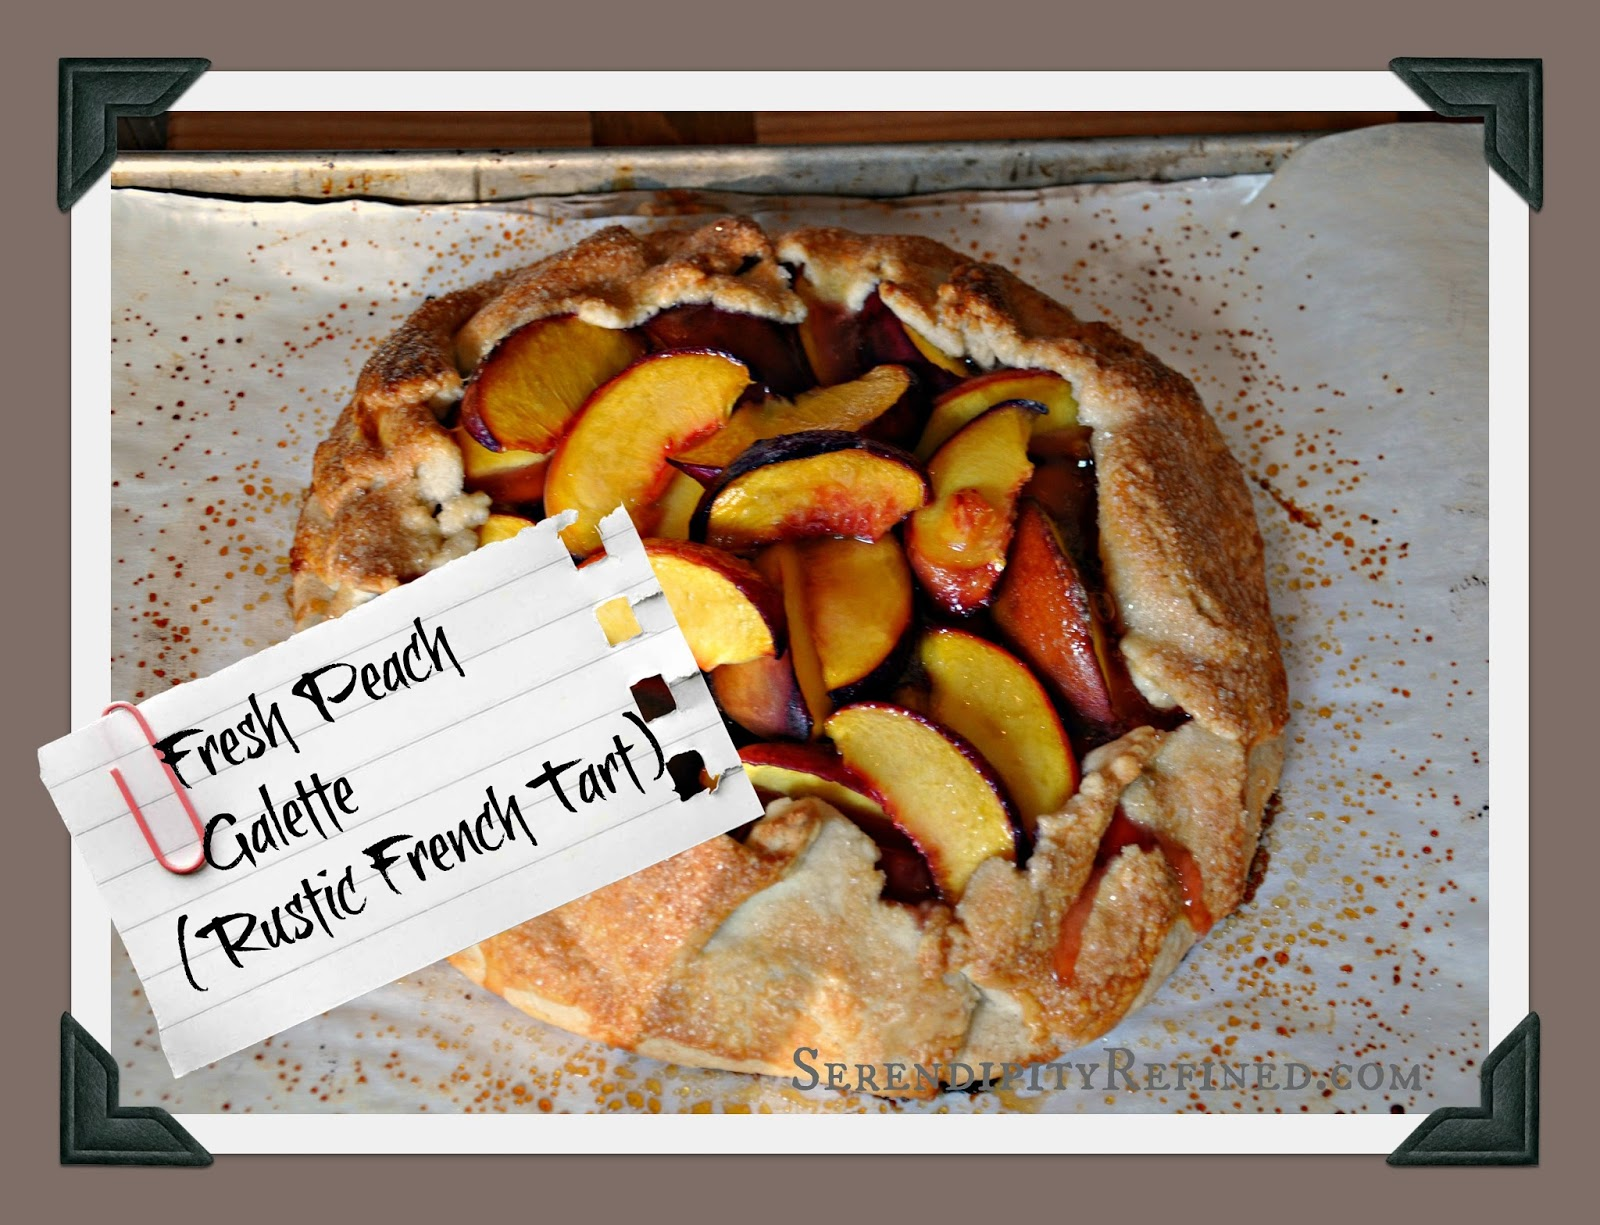 Fresh Peach Galette Simple Rustic French Tart